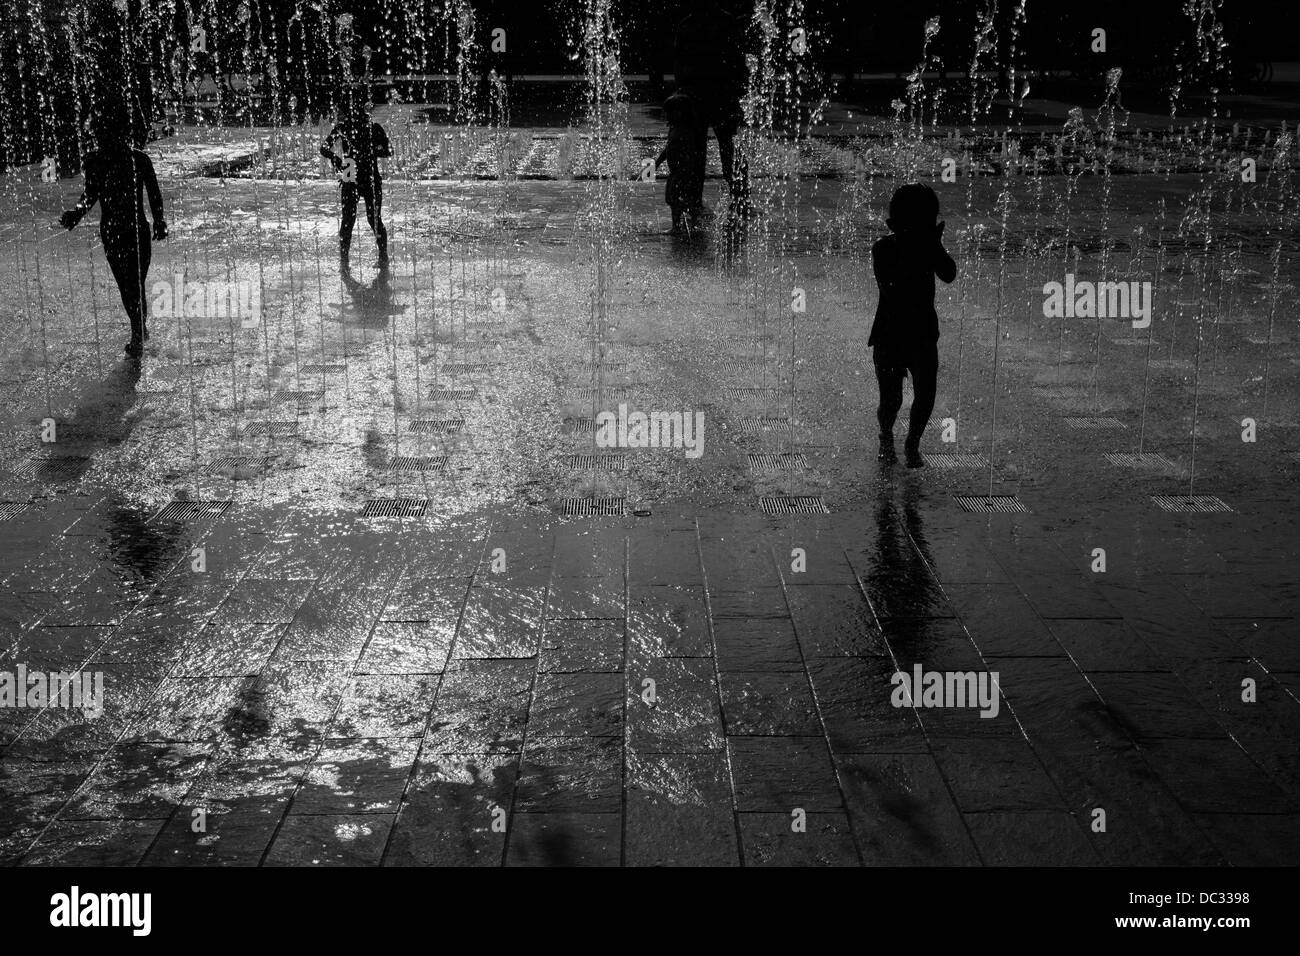 Children play in the fountains in Granary Square, King's Cross, London, UK - Stock Image